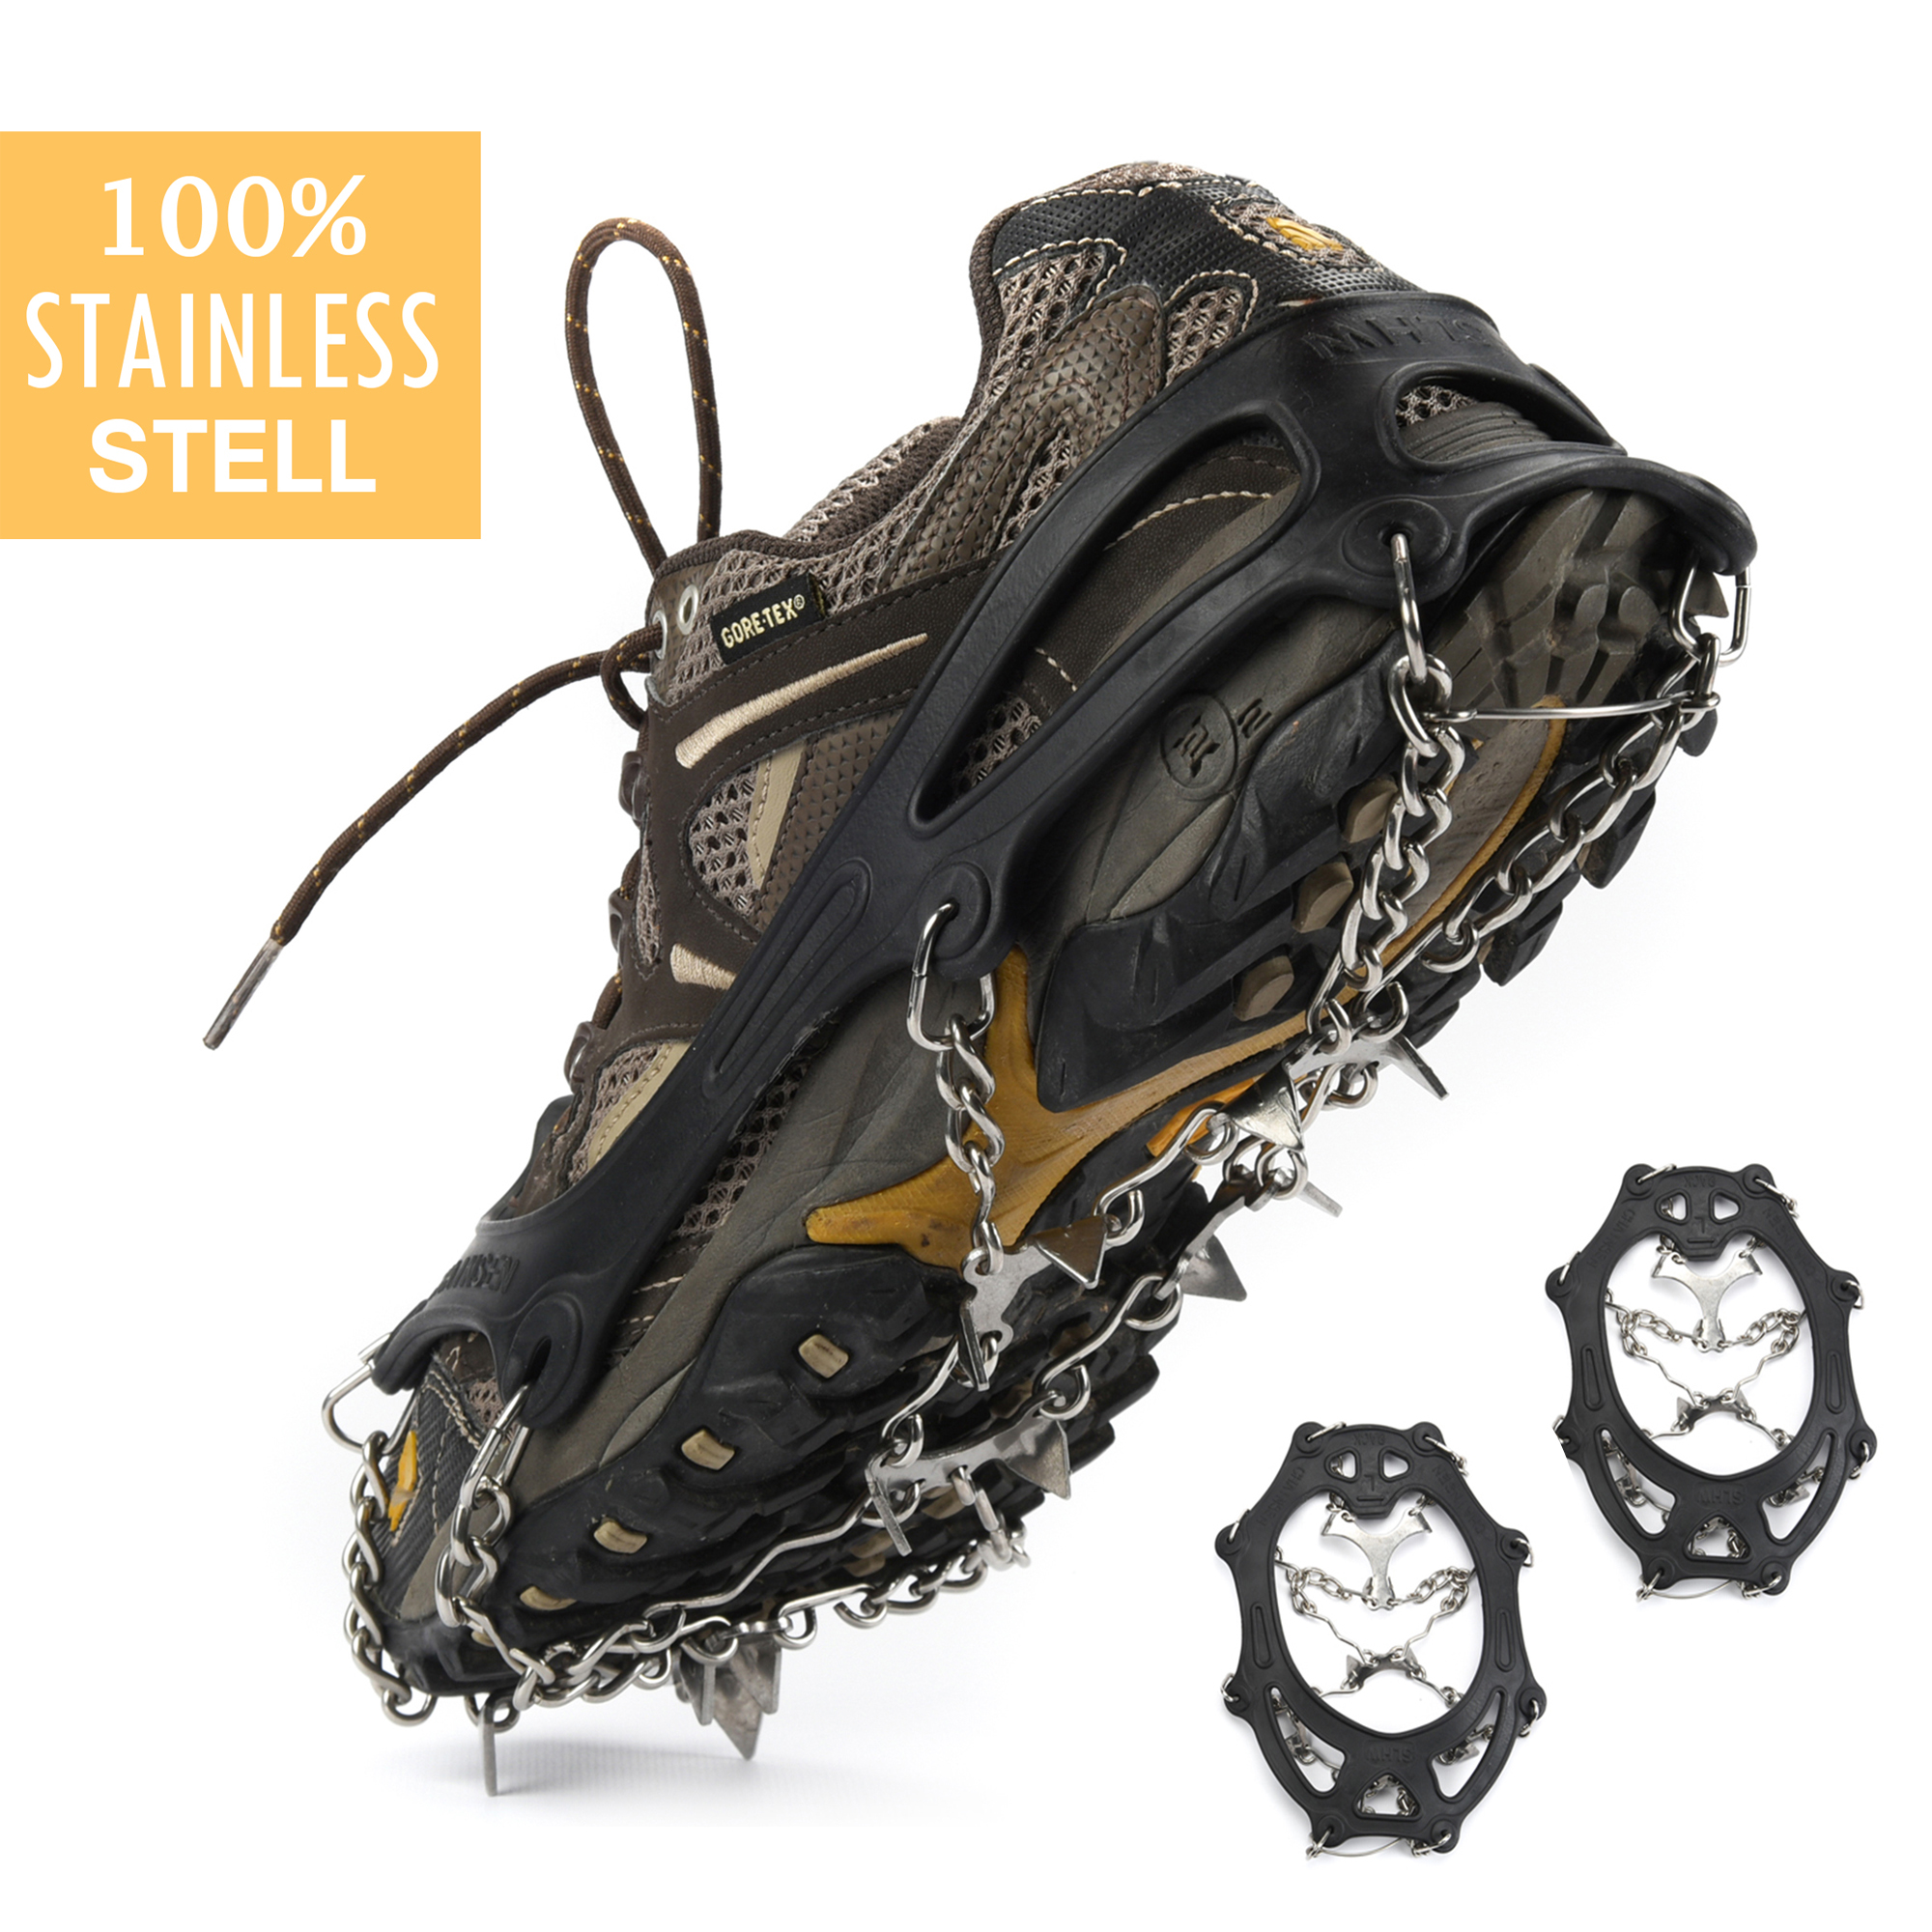 Anti-slip Ice Cleat Shoe Boot Tread Grips Traction Crampon Chain Spike (12-Crampon,L)